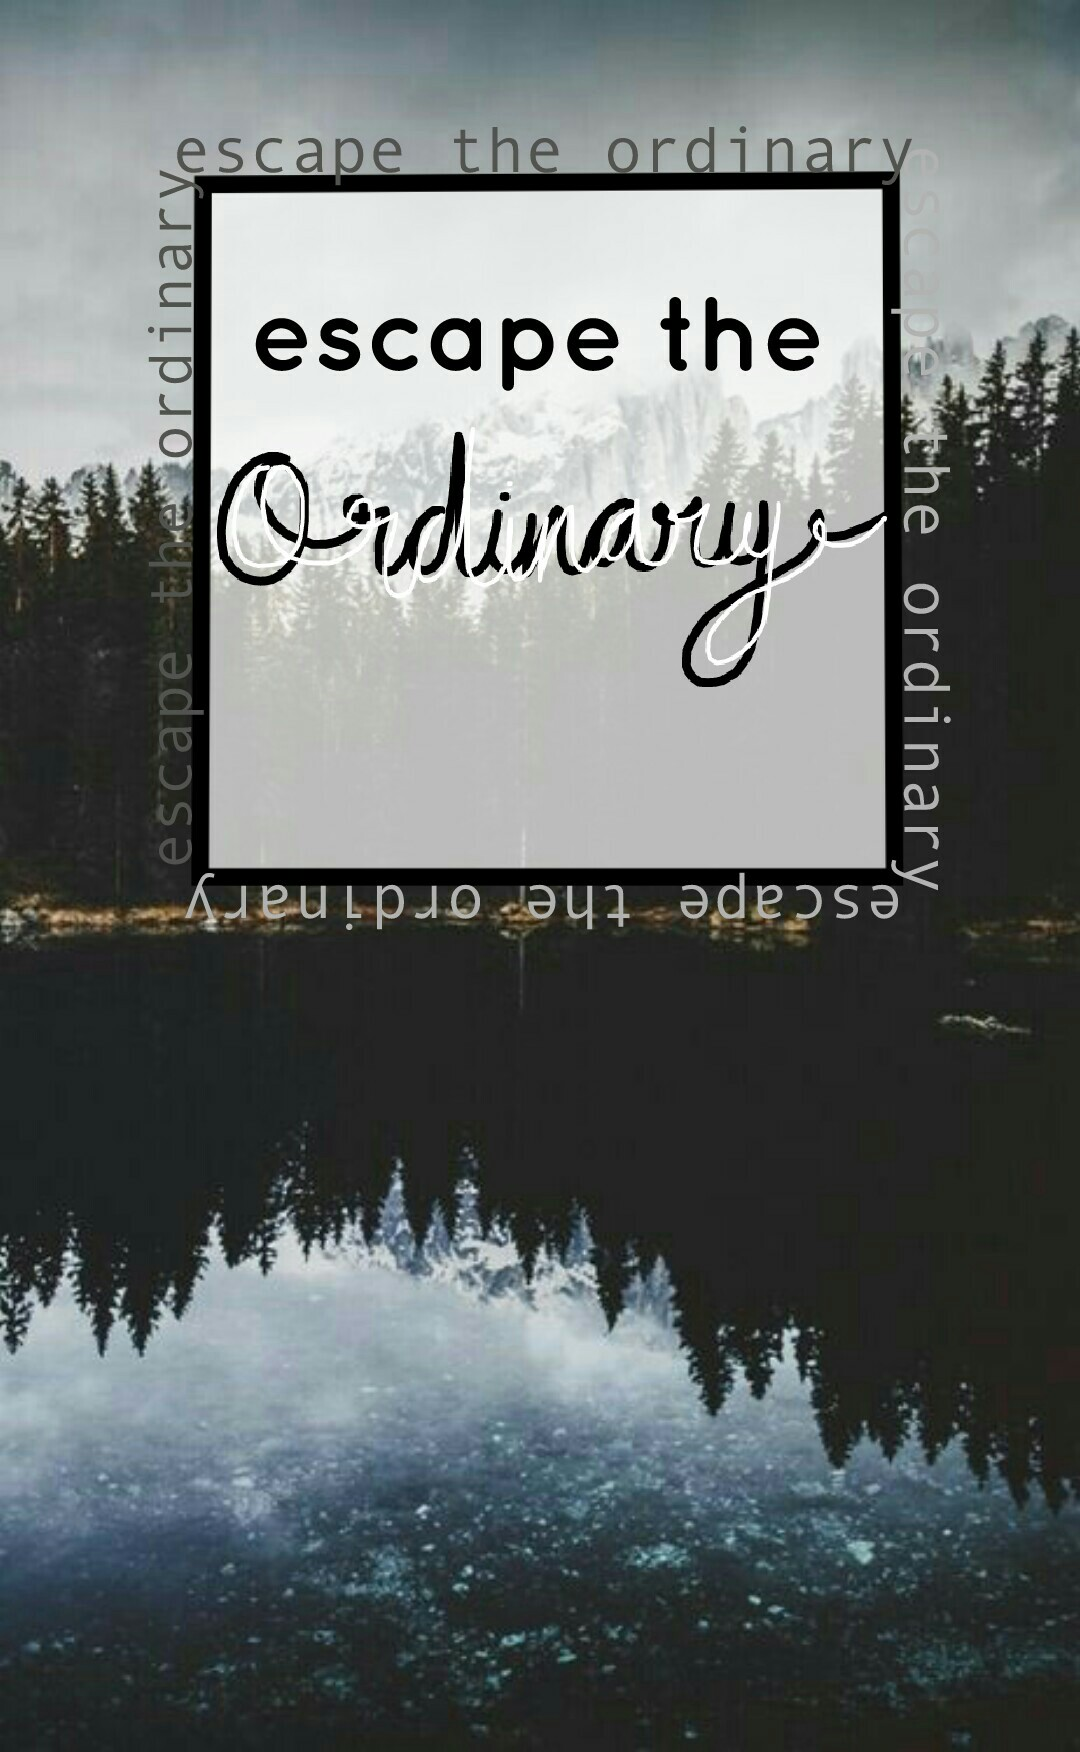 ~escape the ordinary~